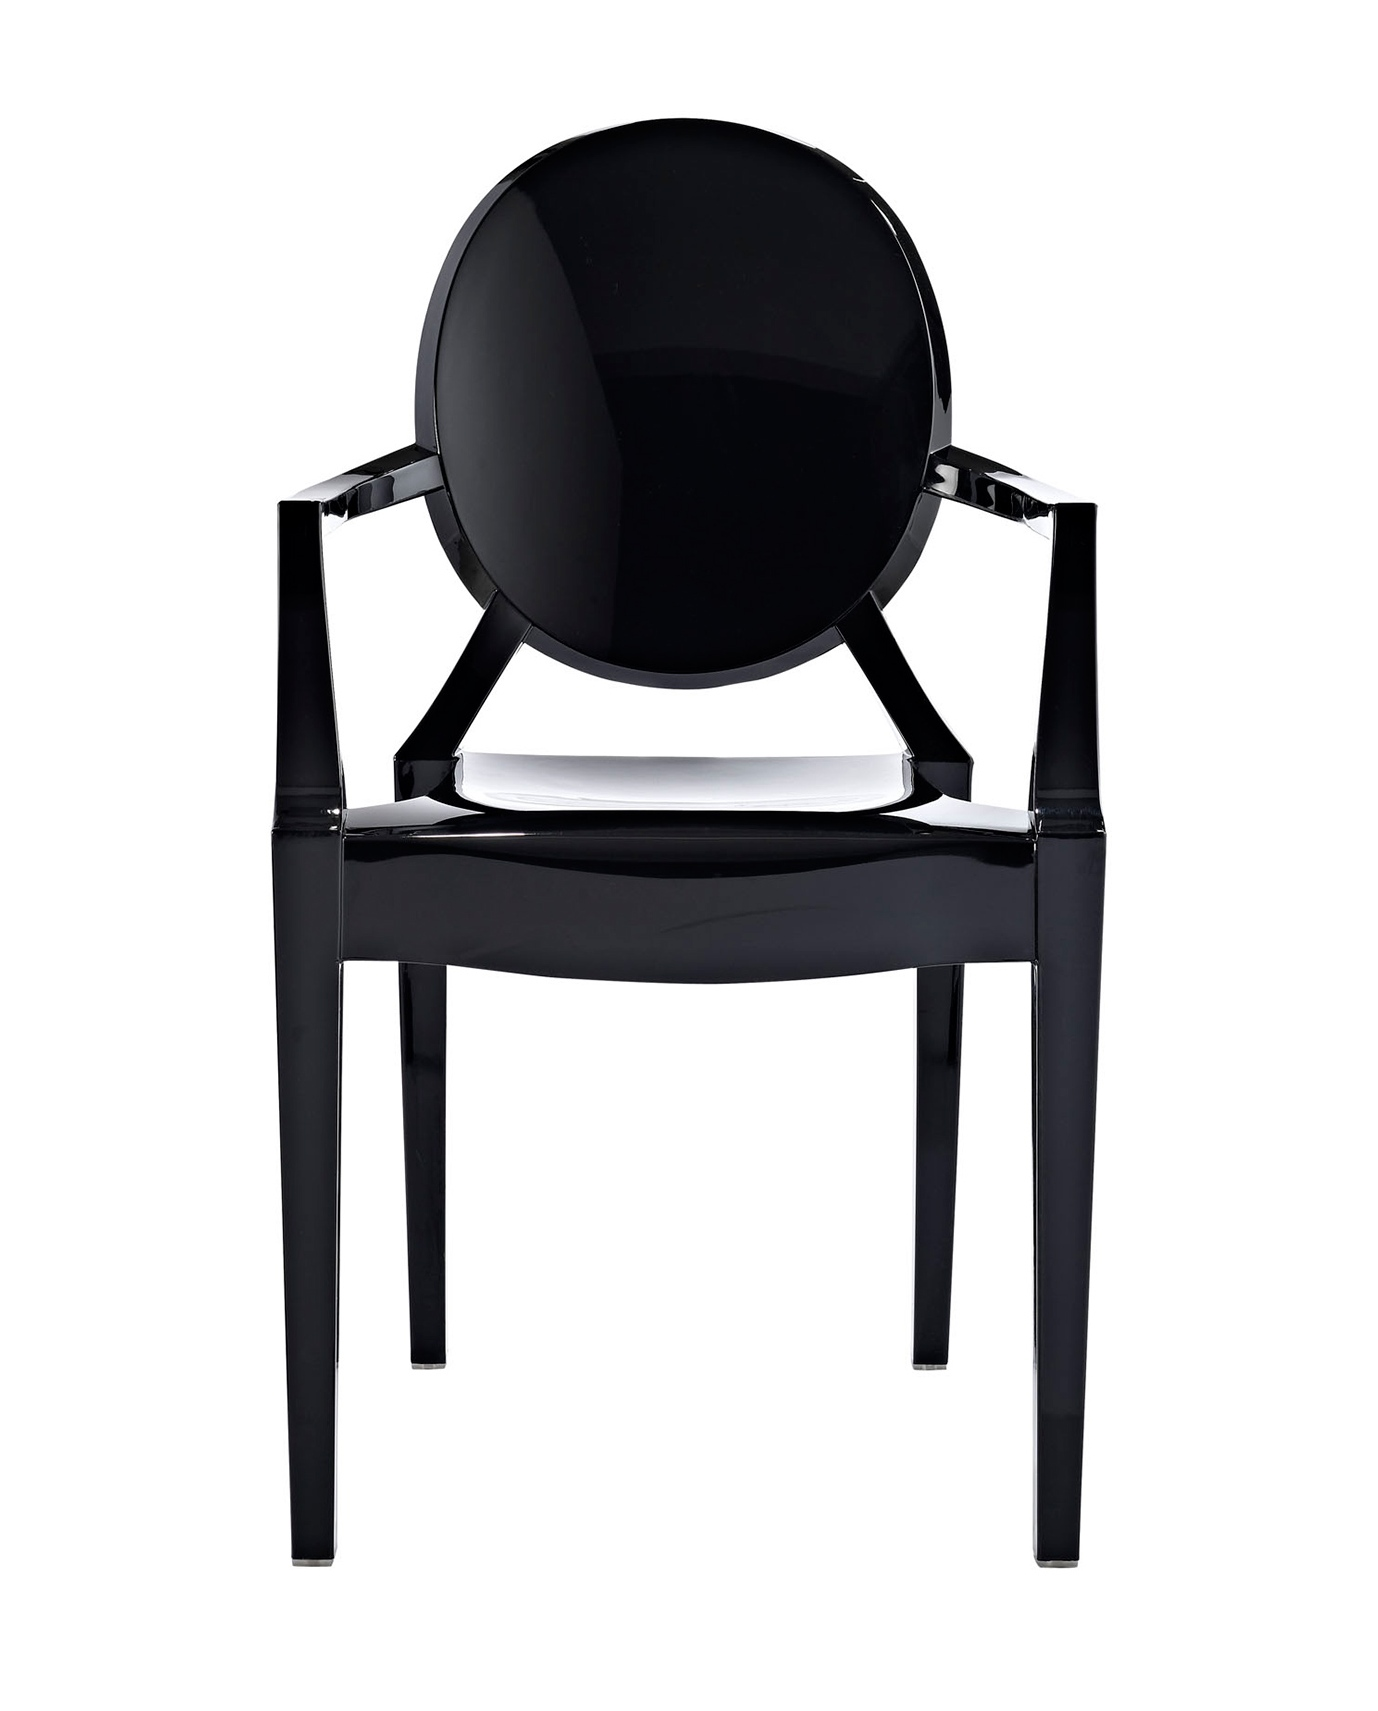 DG-HOME Стул Ghost Chair umbra стул oh chair красный